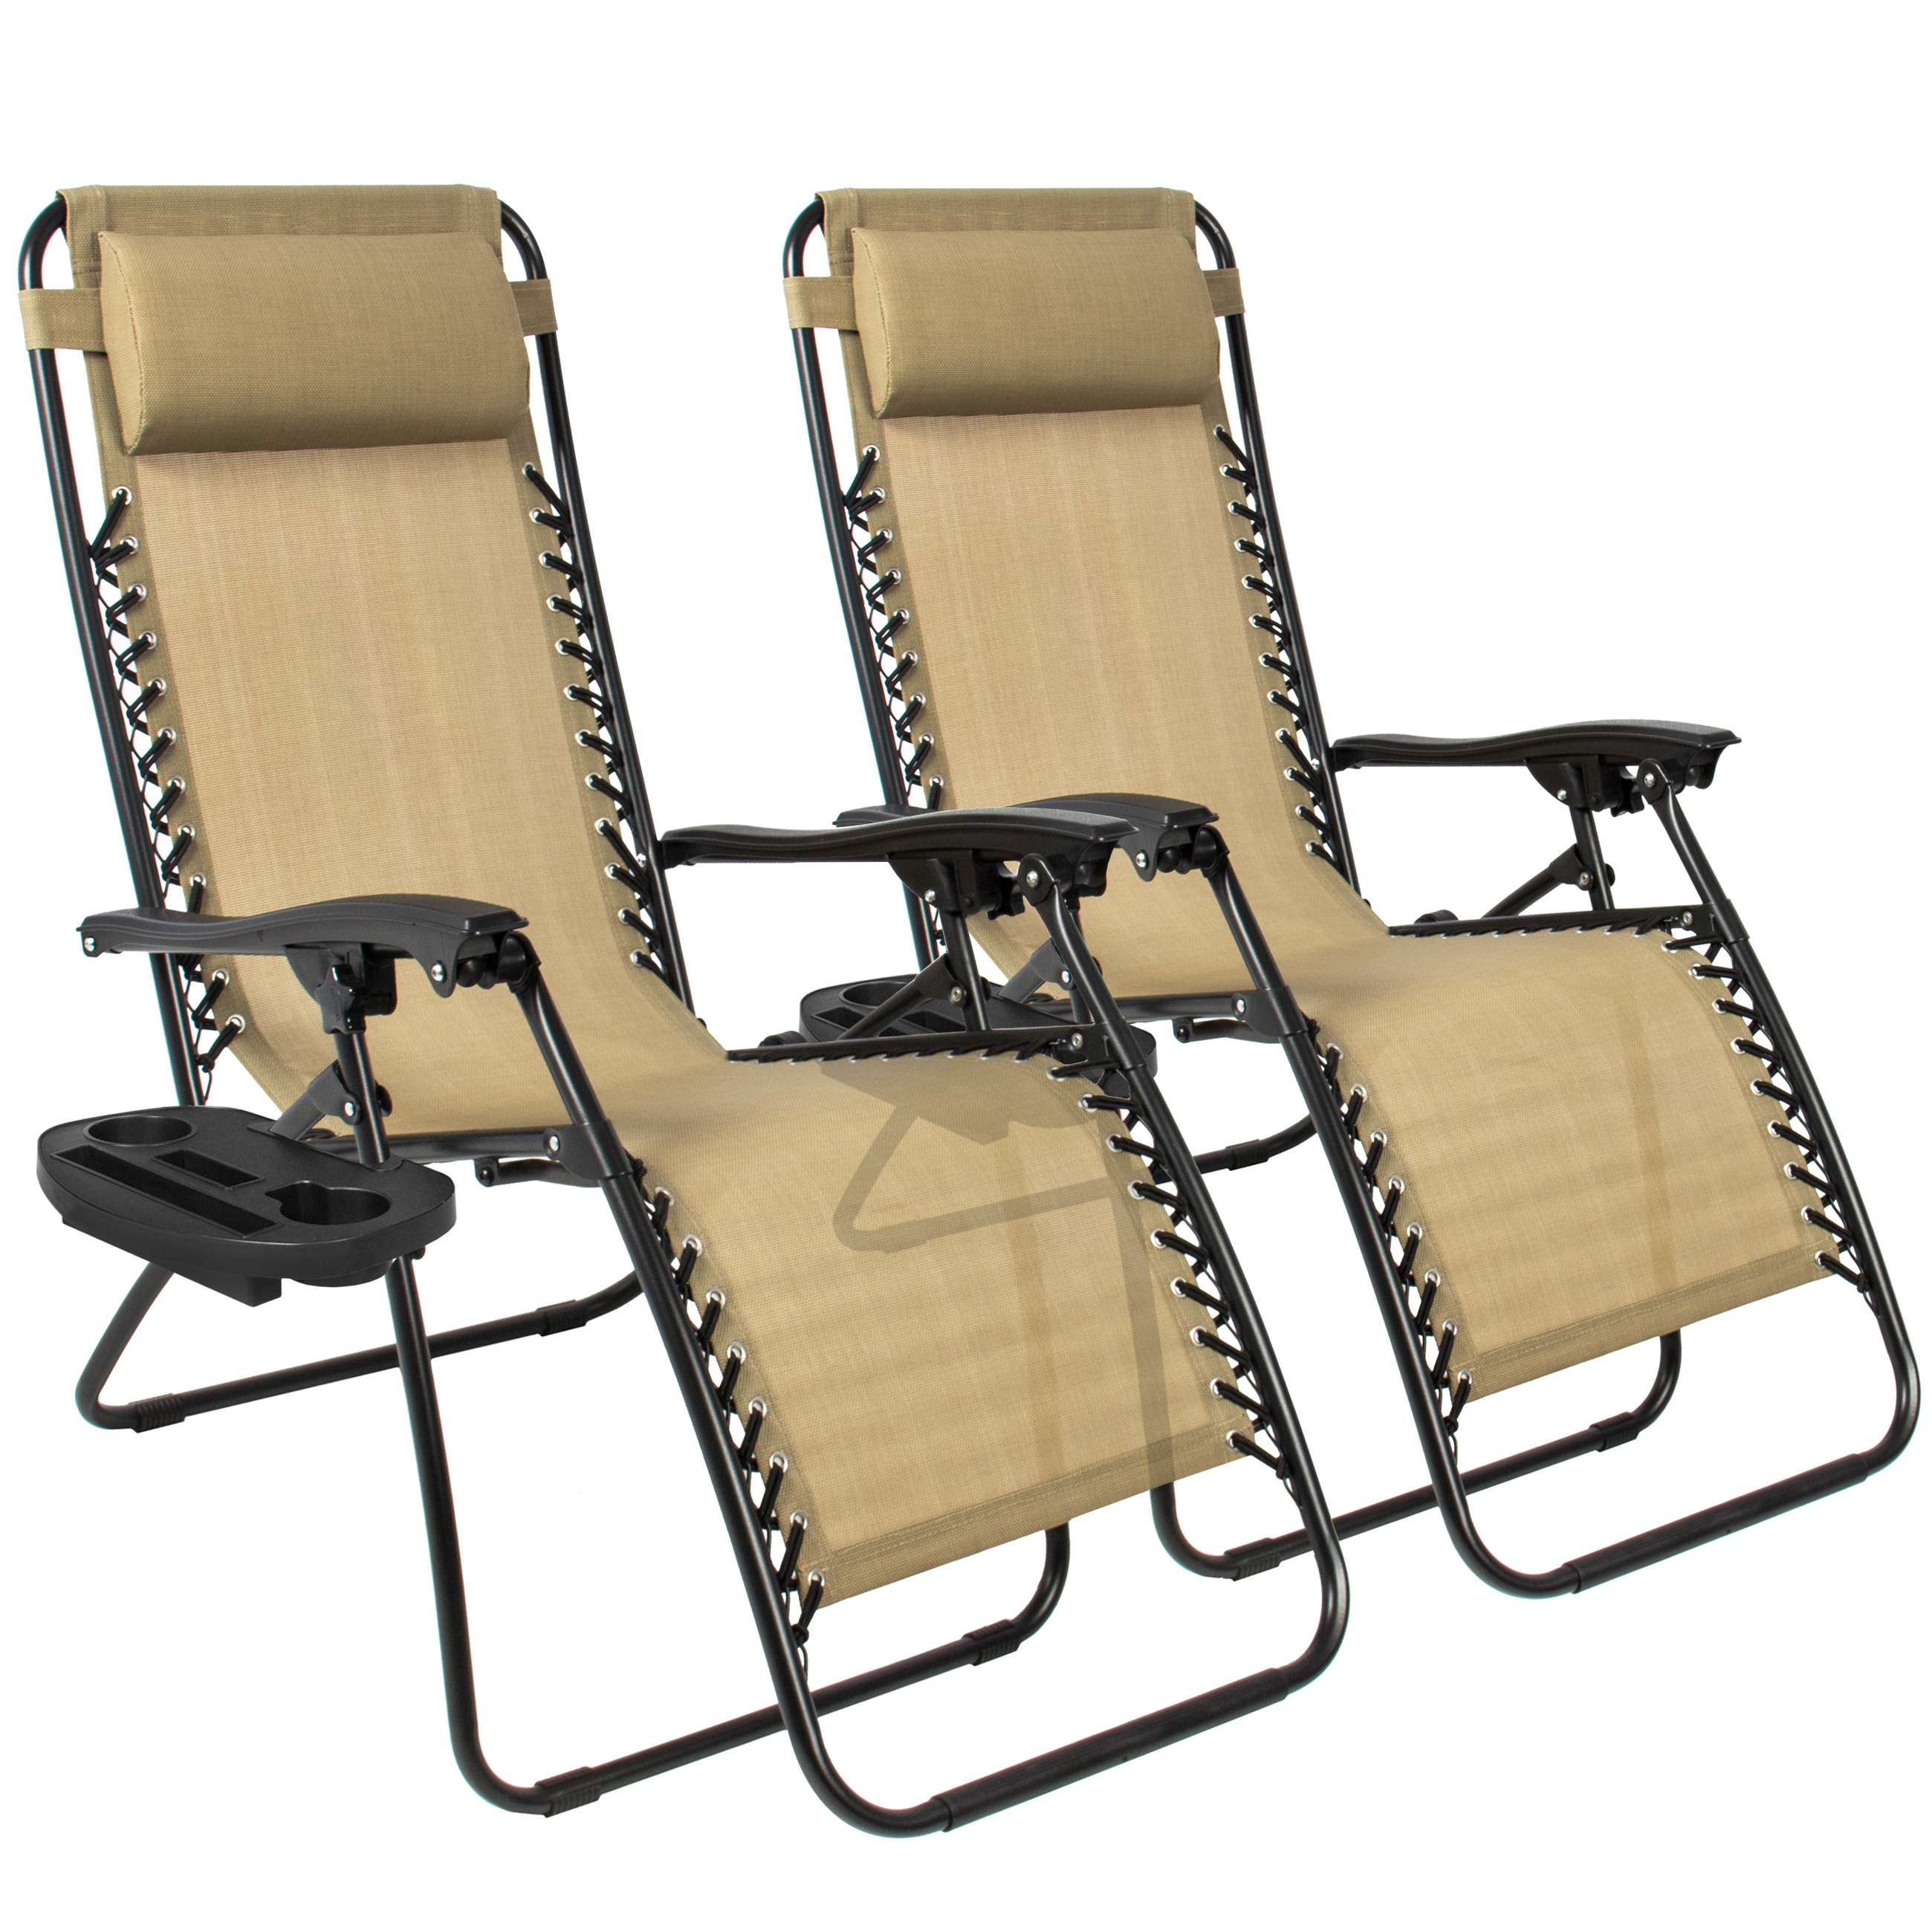 lawn chairs zero gravity chairs case of (2) tan lounge patio chairs outdoor yard beach ZZMTMJQ